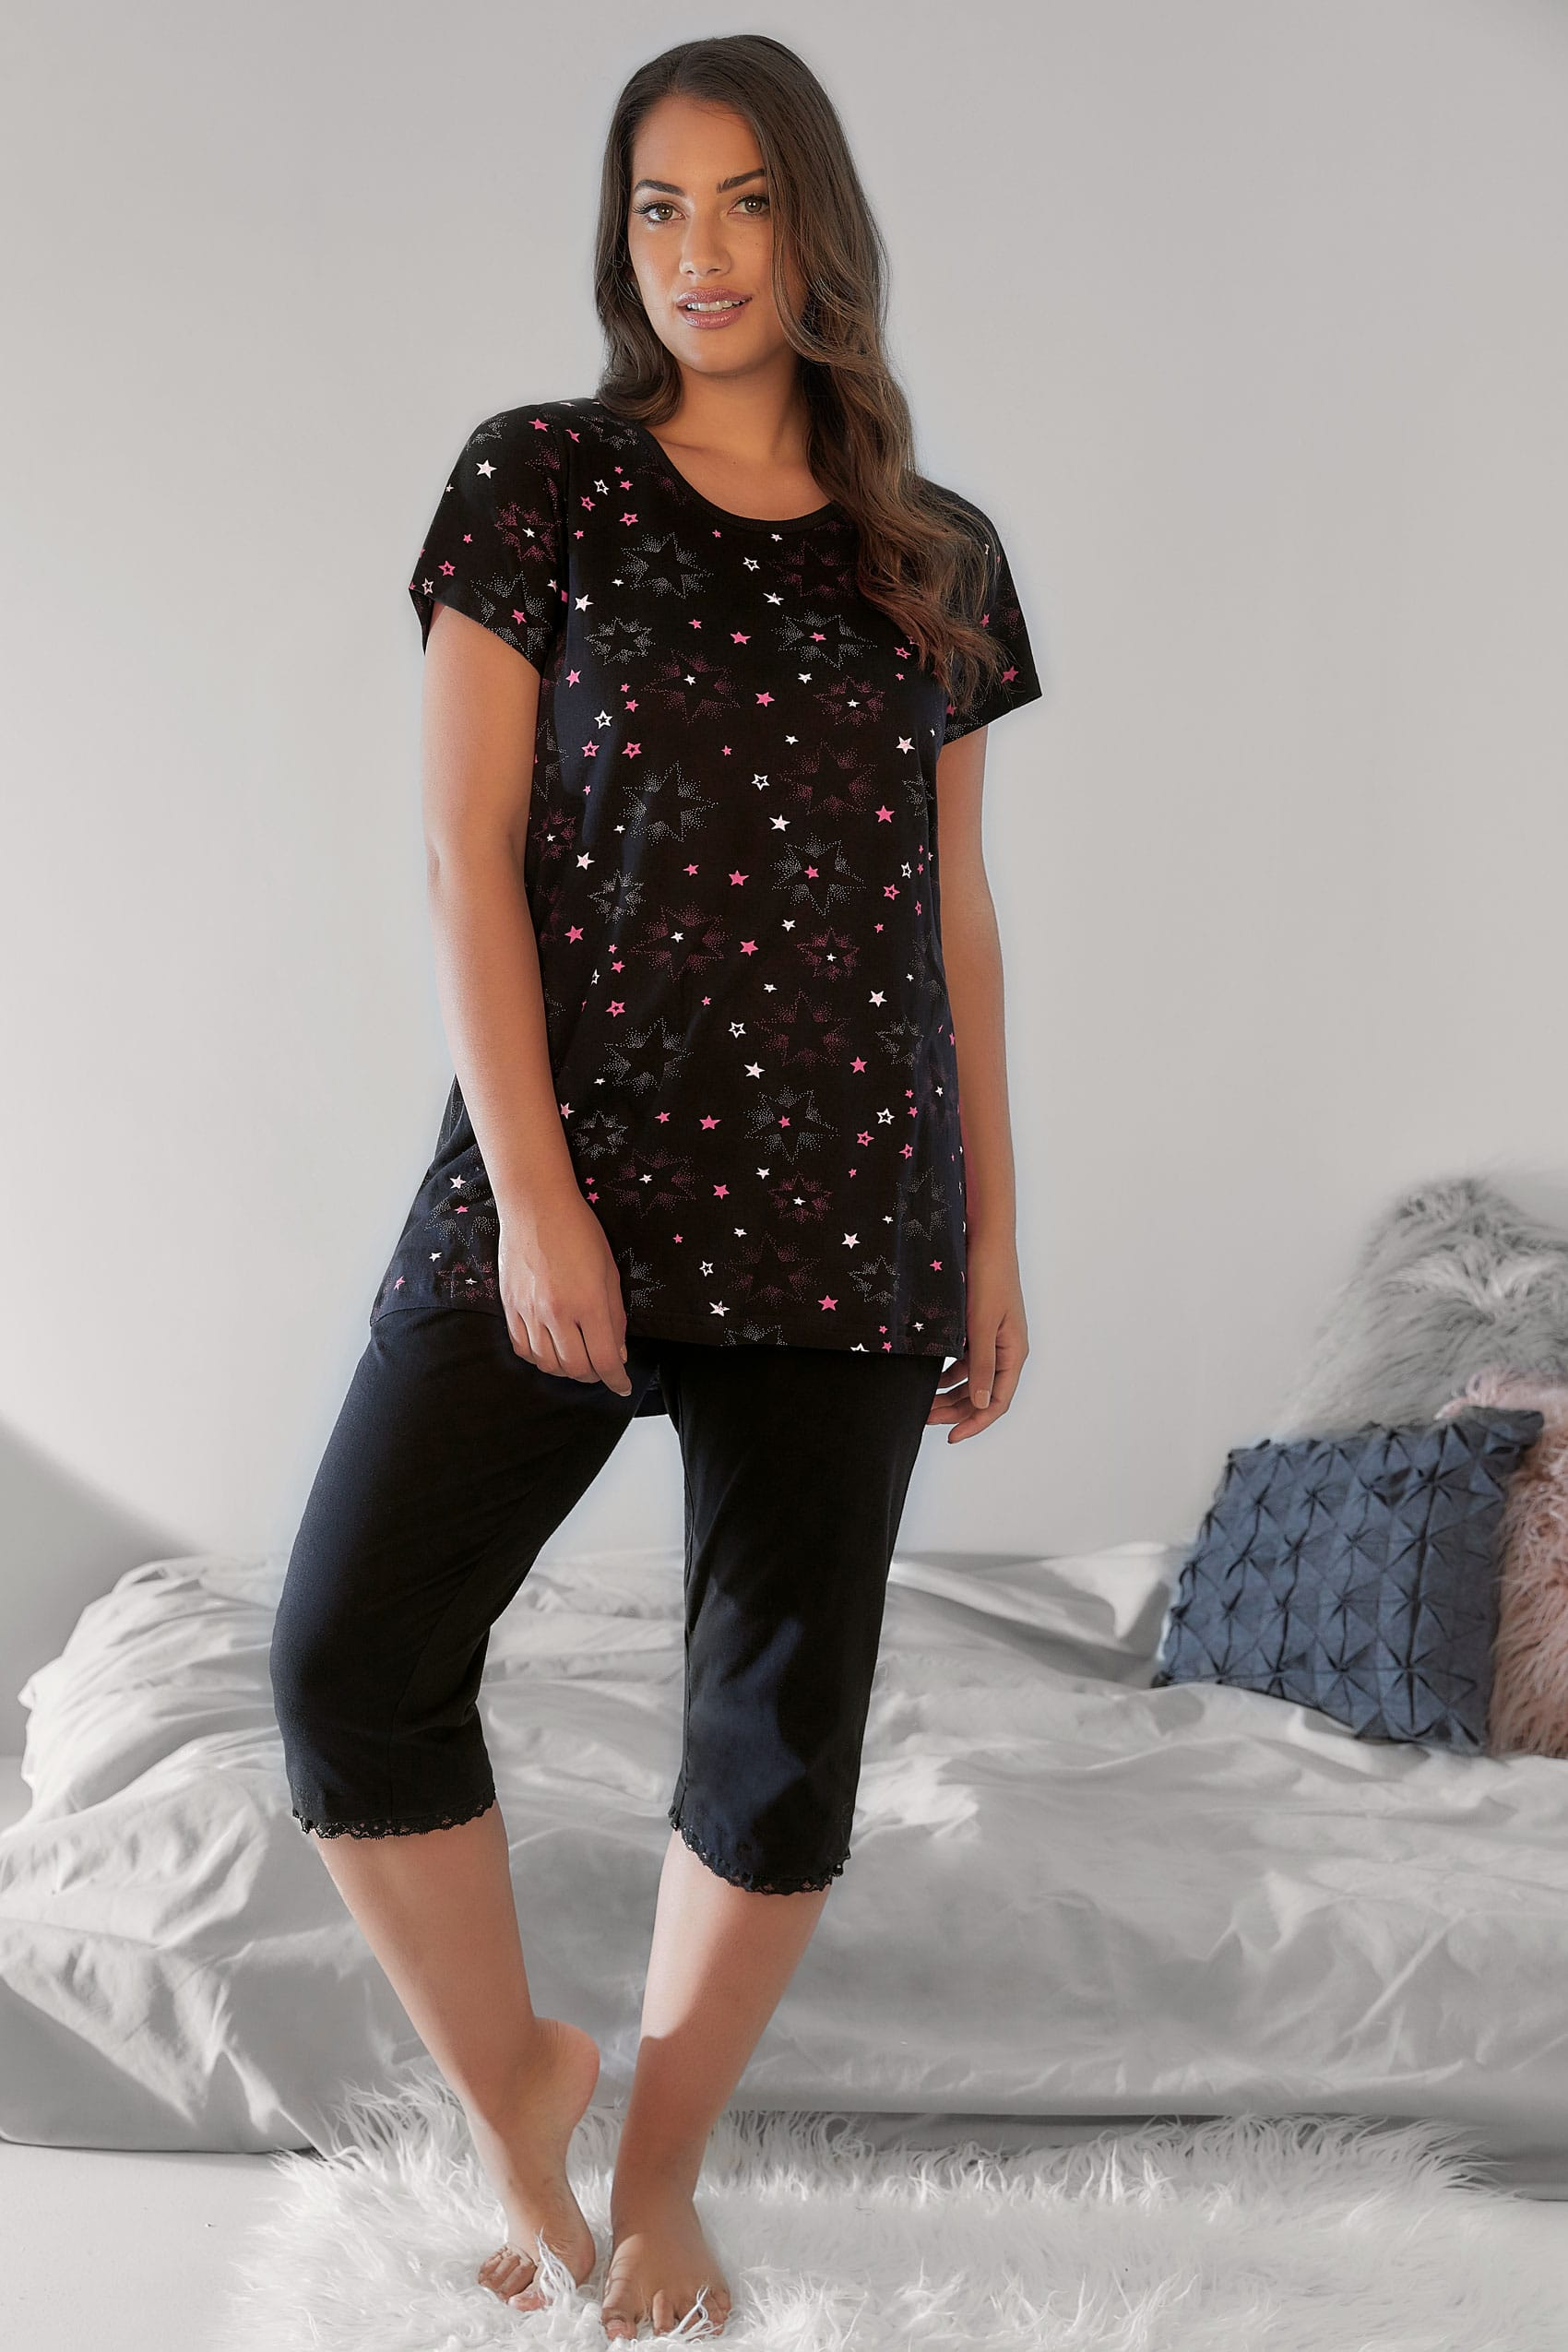 schwarz rosa pyjama top mit sternemuster plus size gr en 44 bis 64. Black Bedroom Furniture Sets. Home Design Ideas